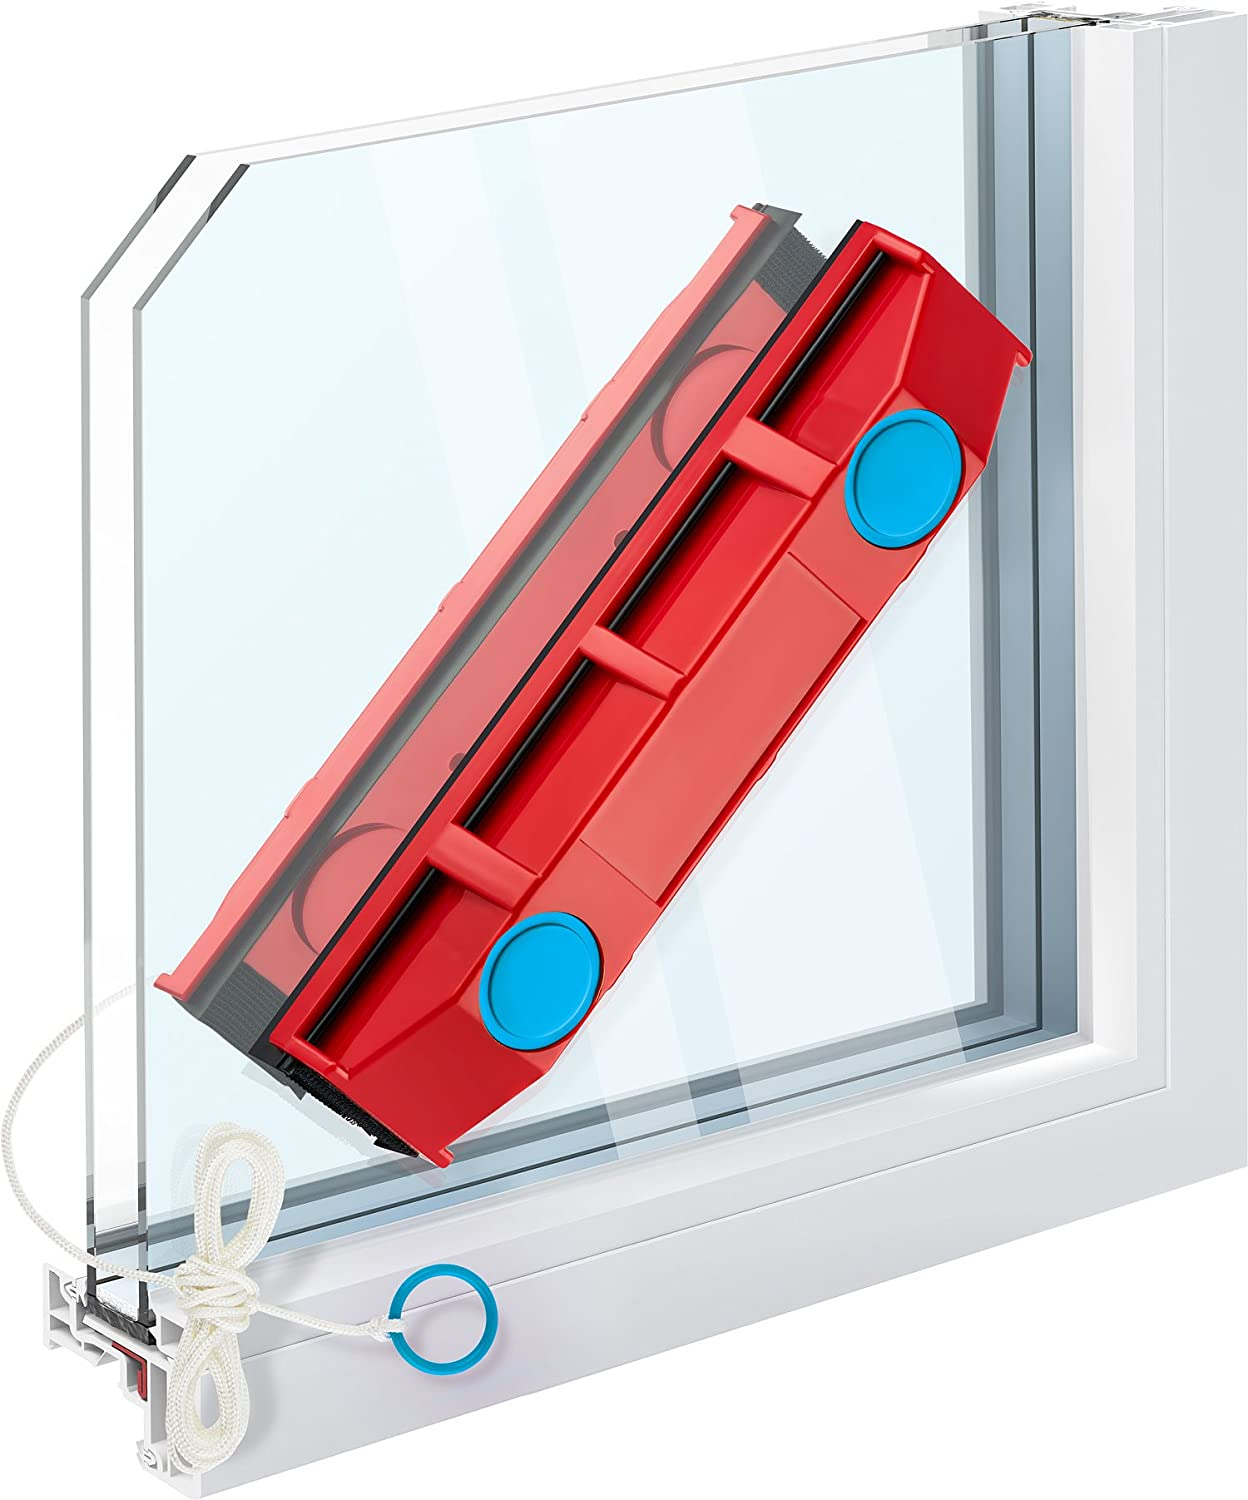 Tyroler Bright Tools The Glider D-2, Magnetic Window Cleaner for Double Glazed Windows Fit to 0.3 -0.7  Window thickness.